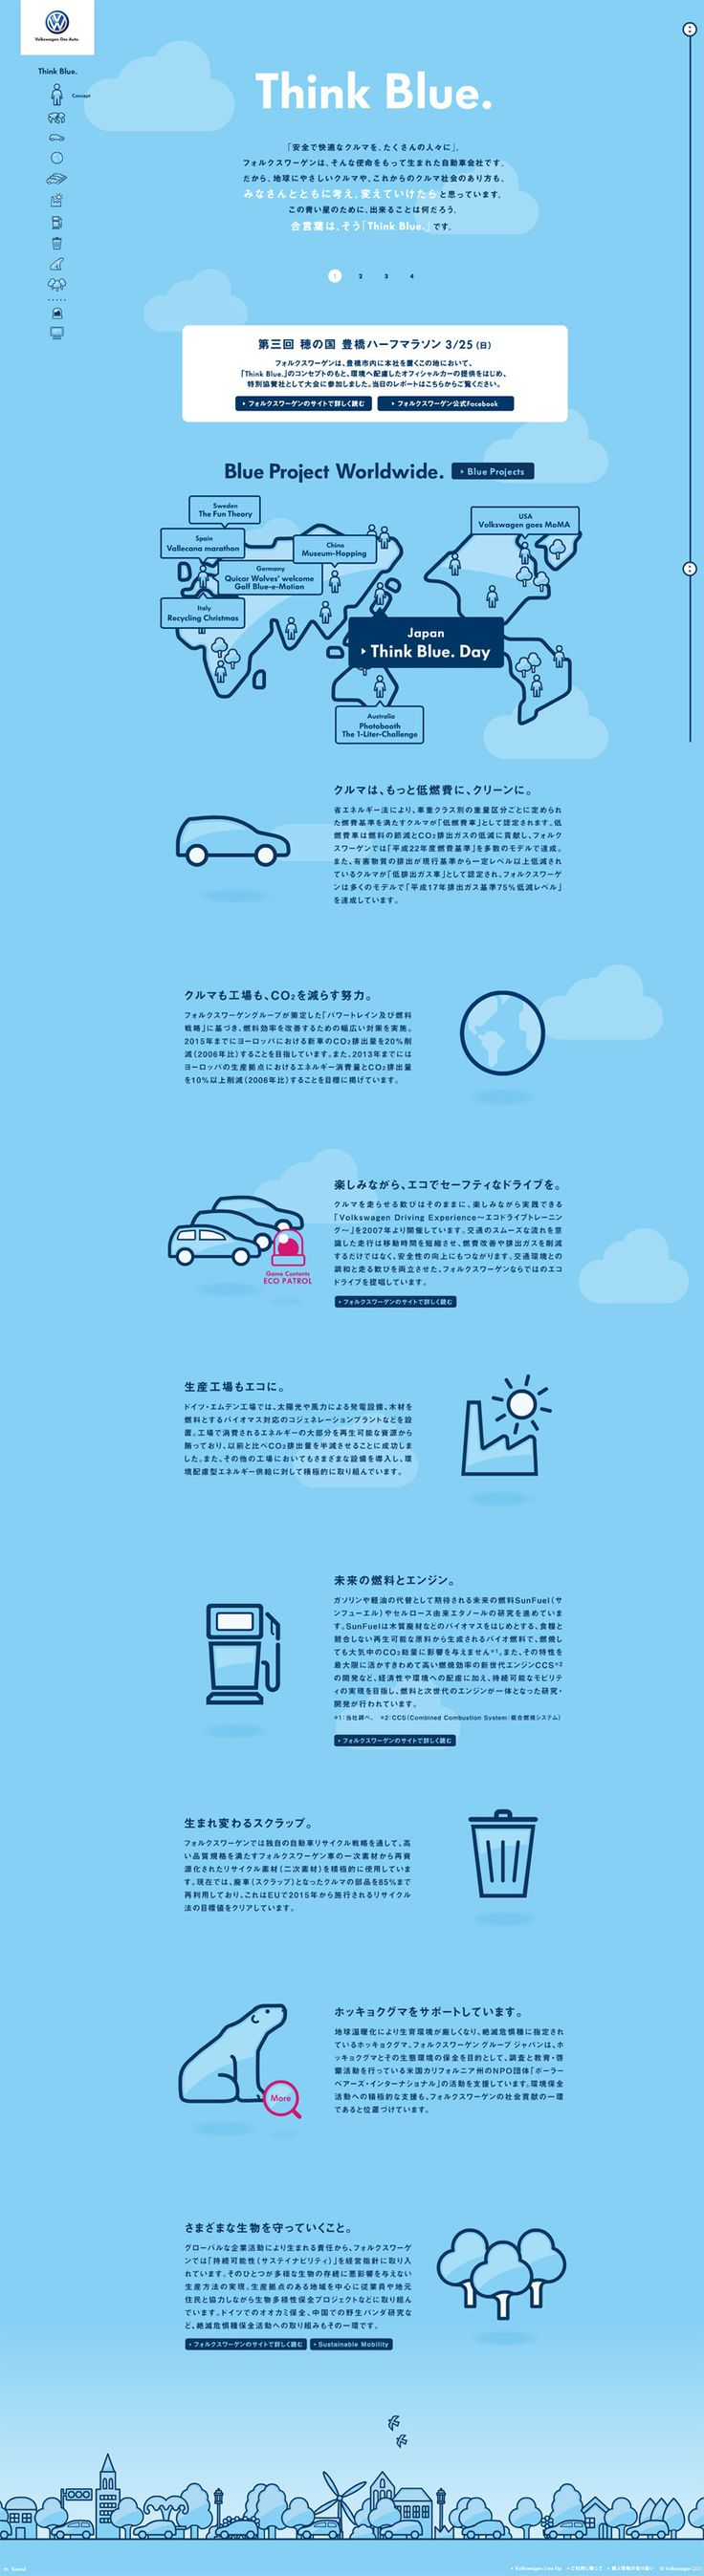 Unique Web Design, Volkswagen Japan http://www.pinterest.com/aldenchong/) more…